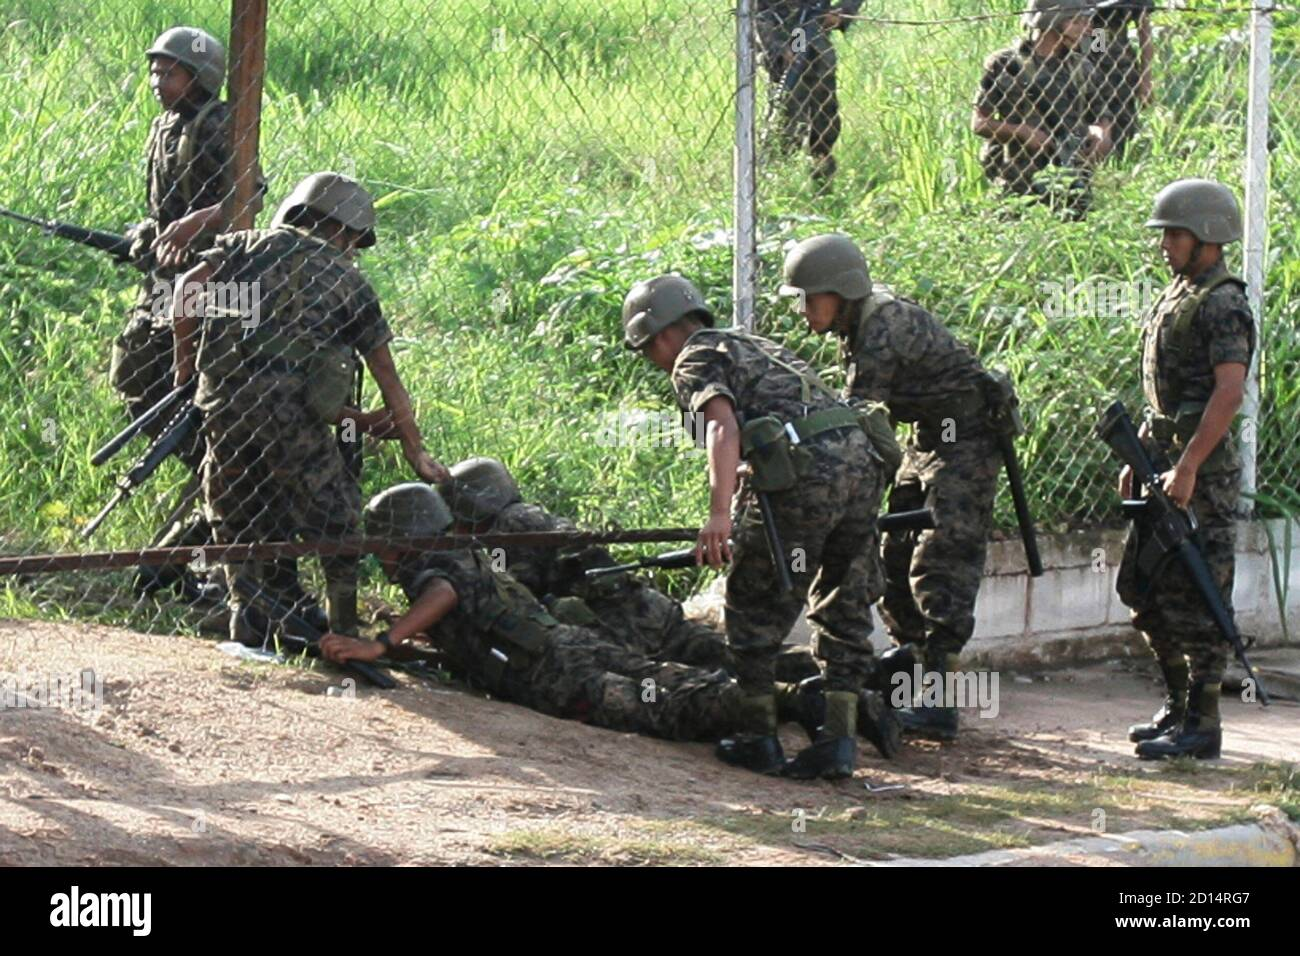 Soldiers crawl through a hole in the fencing to enter the presidential residency in Tegucigalpa June 28, 2009. Witnesses said Honduras' President Manuel Zelaya was detained at home by troops in a constitutional crisis over his attempt to win re-election. CNN's Spanish-language channel later quoted Costa Rican officials as saying he was in Costa Rica and seeking political asylum. REUTERS/Edgard Garrido (HONDURAS CONFLICT MILITARY POLITICS IMAGES OF THE DAY) Stock Photo